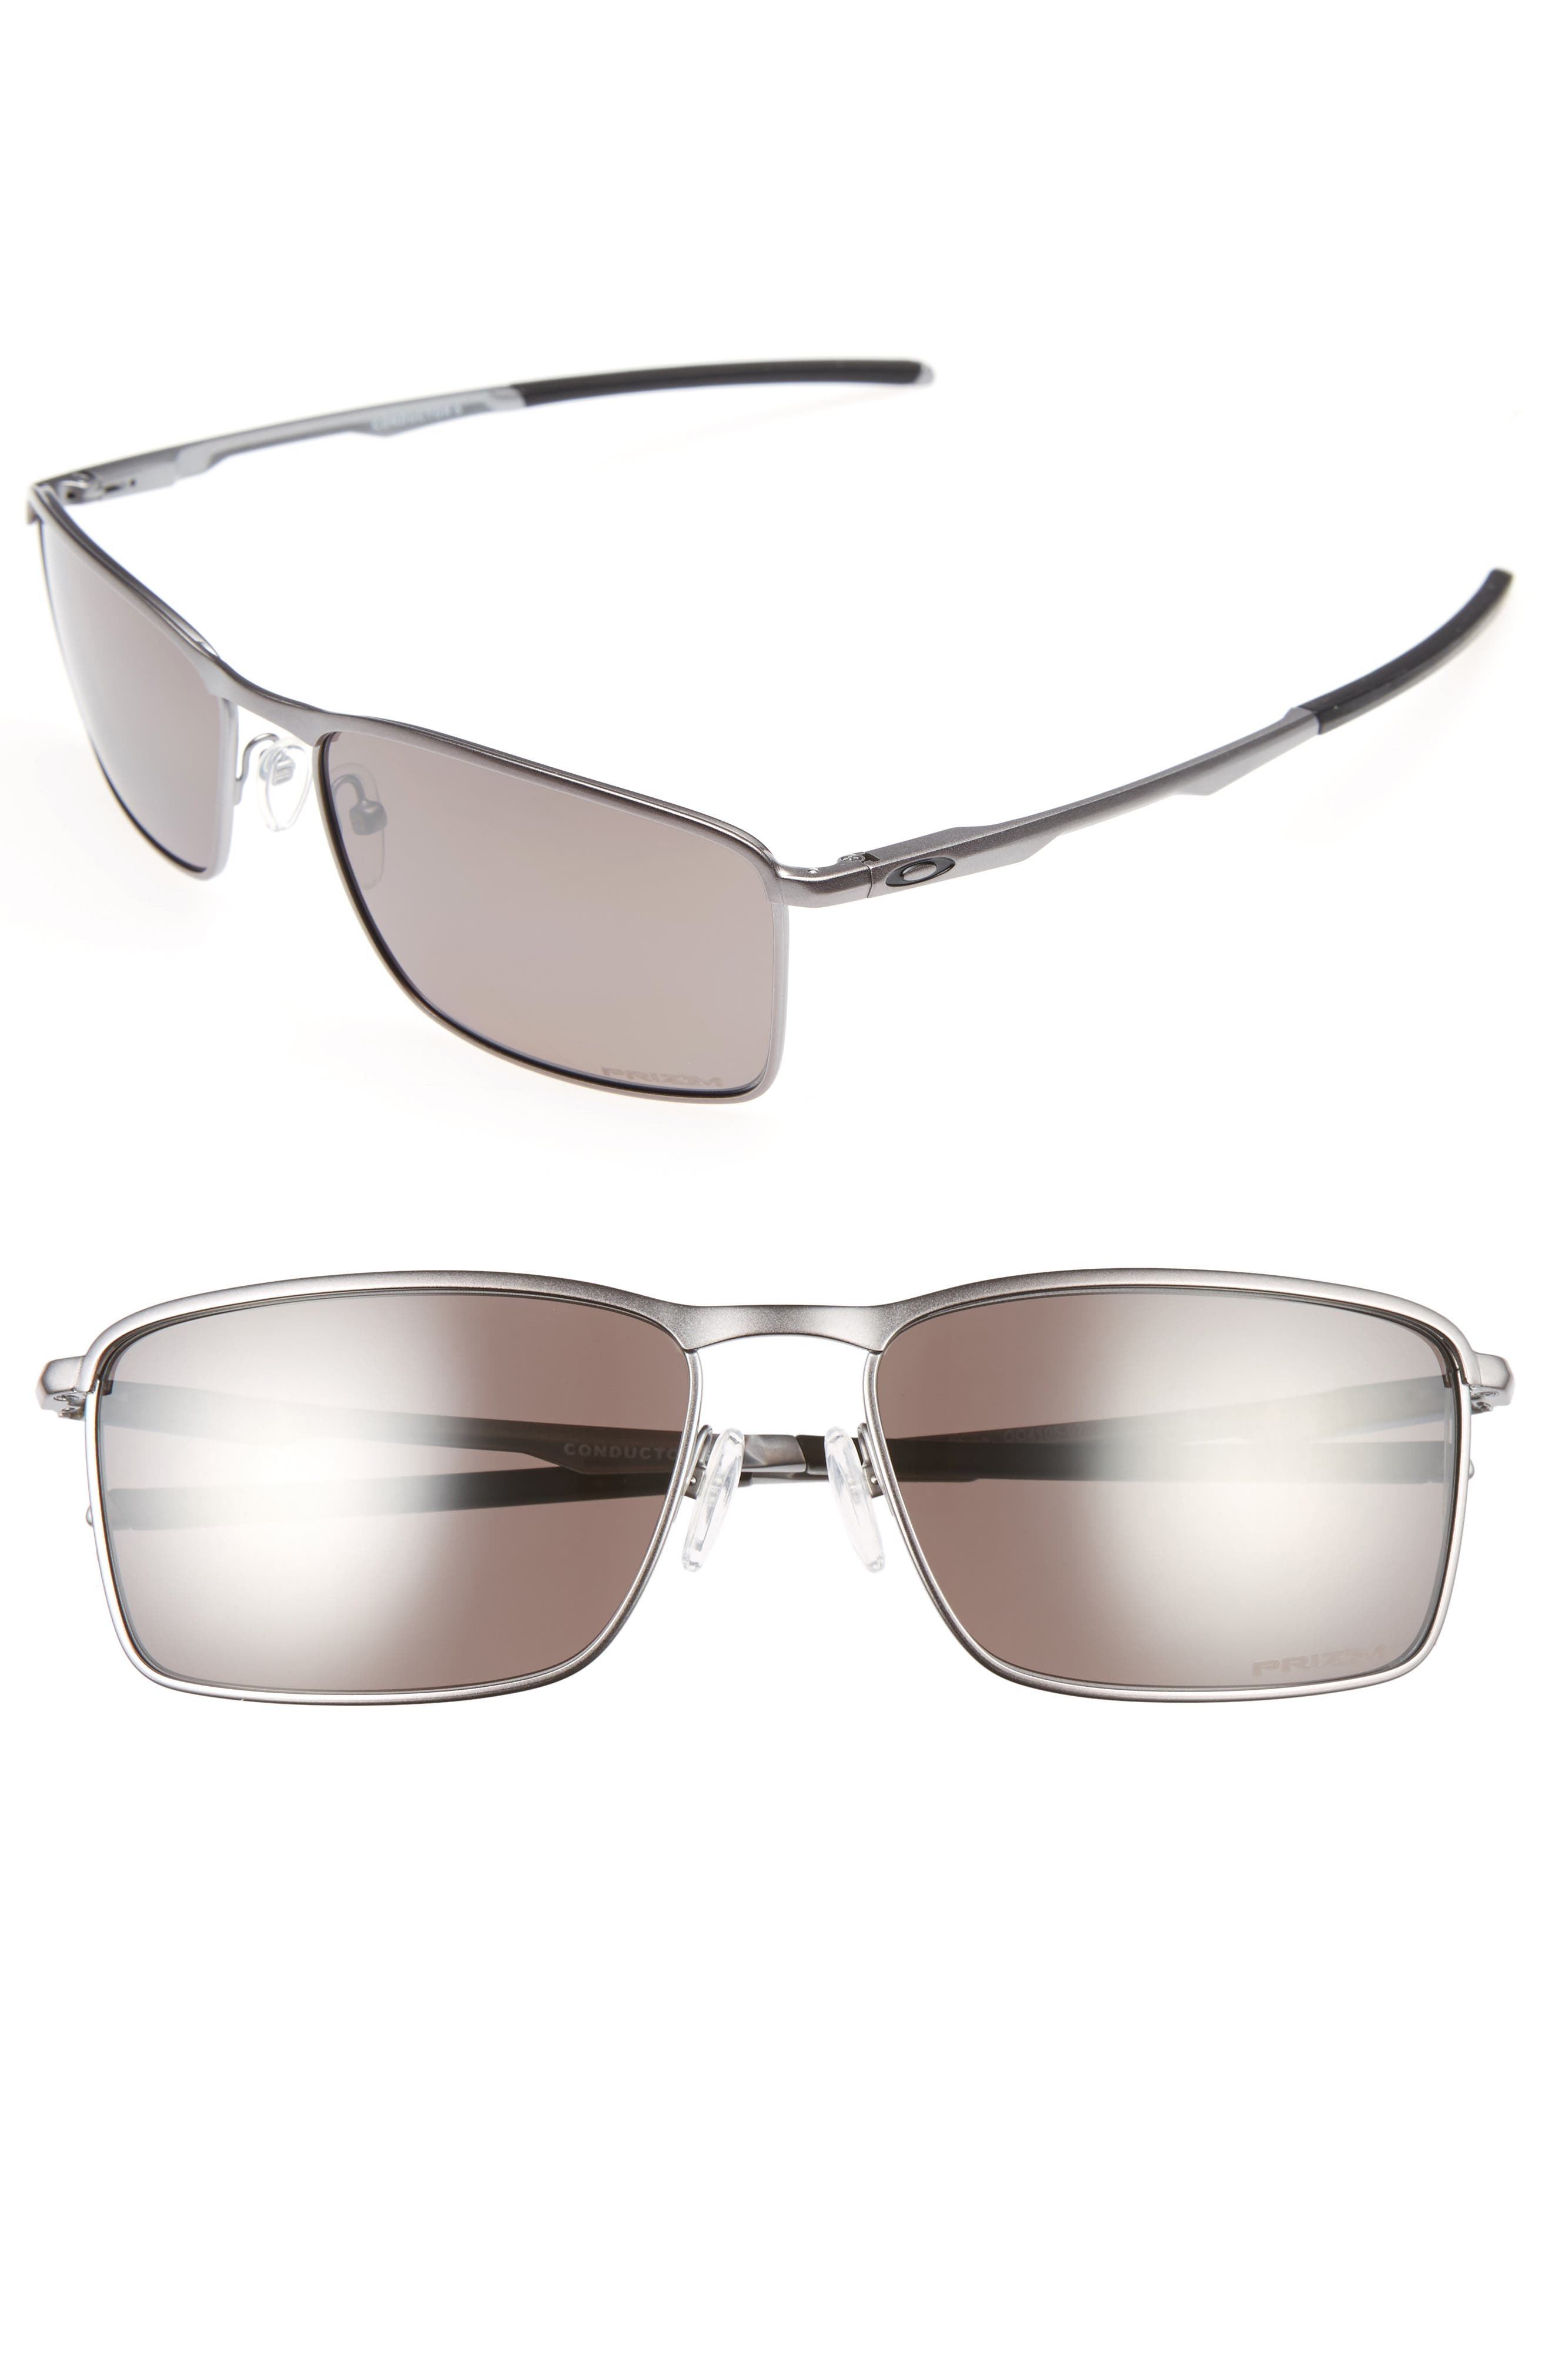 Conductor 6 58mm Polarized Sunglasses,                             Alternate thumbnail 2, color,                             GREY